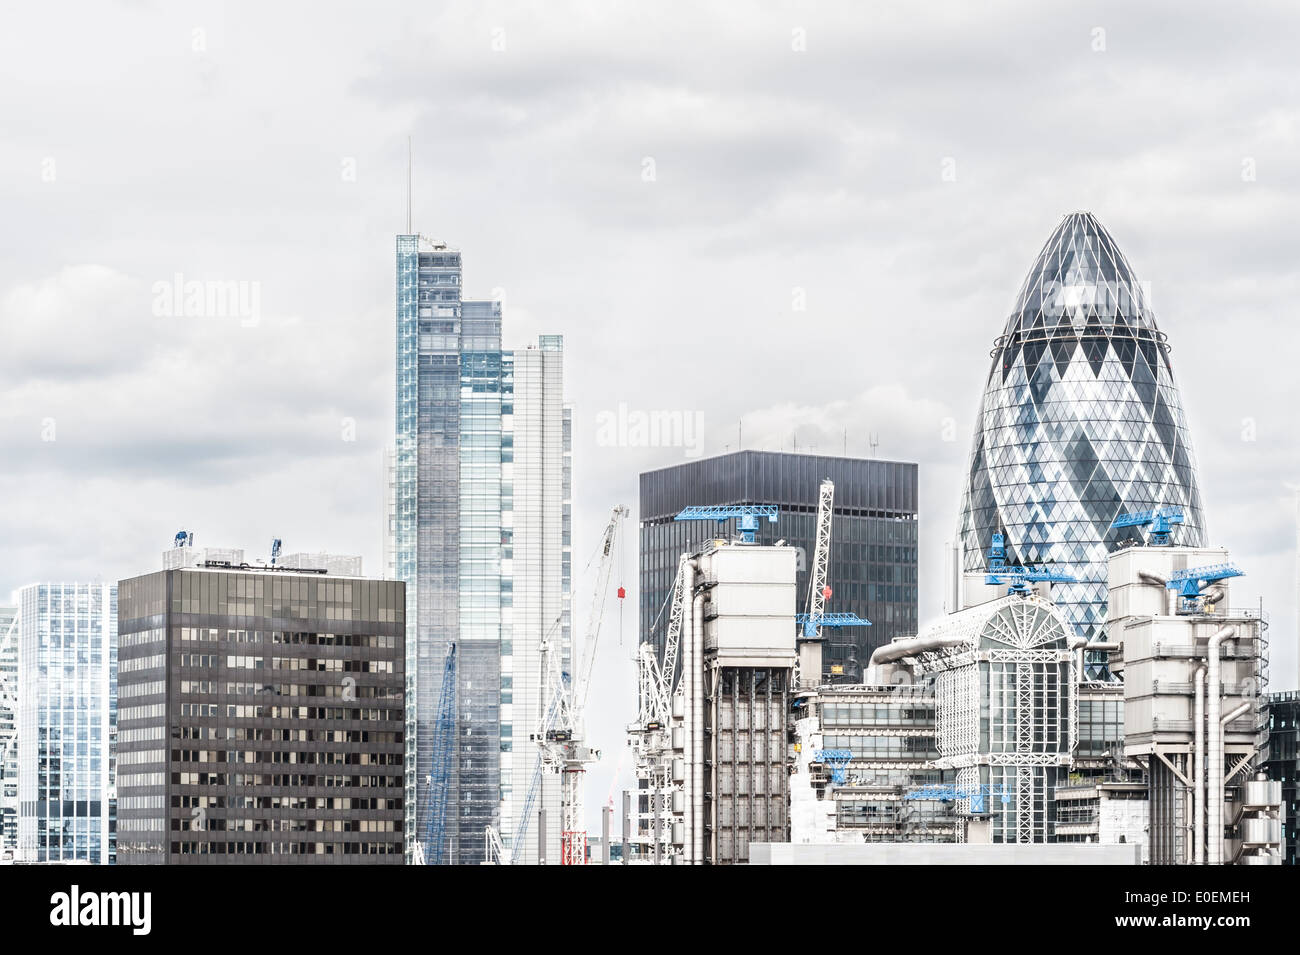 City of London (financial district), UK - Stock Image